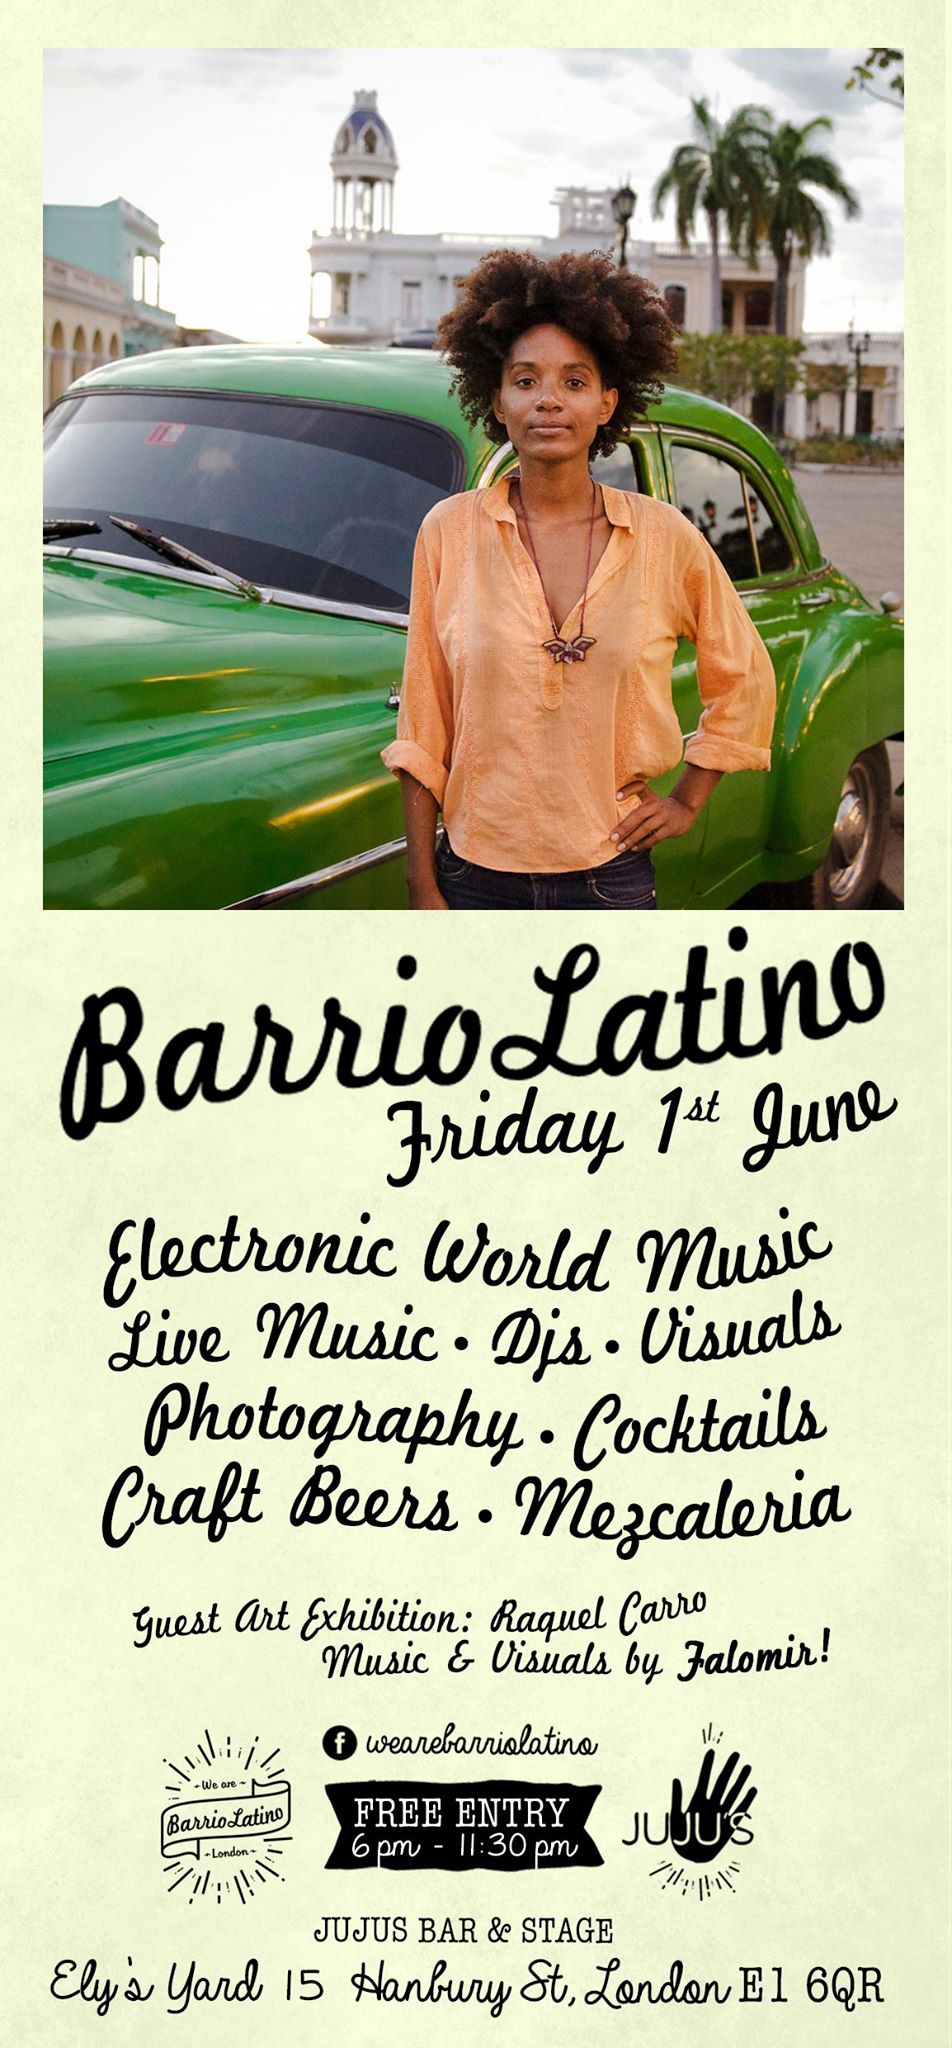 Barrio Latino at JuJus Bar and Stage - I will be exhibiting some of the photos I took years ago in Cuba at Juju's Bar & Stager during their monthly Barrio Latino Party. The party is organised by the super talented fellow artist Sergio Falomir and showcases latin vibes and images from America Latina. He will also be exhibiting some of his work there and will be DJing and playing visuals. Come along to party with us and get to experience Cuba in London. Friday 1st June at Jus Jus Bar and Stage